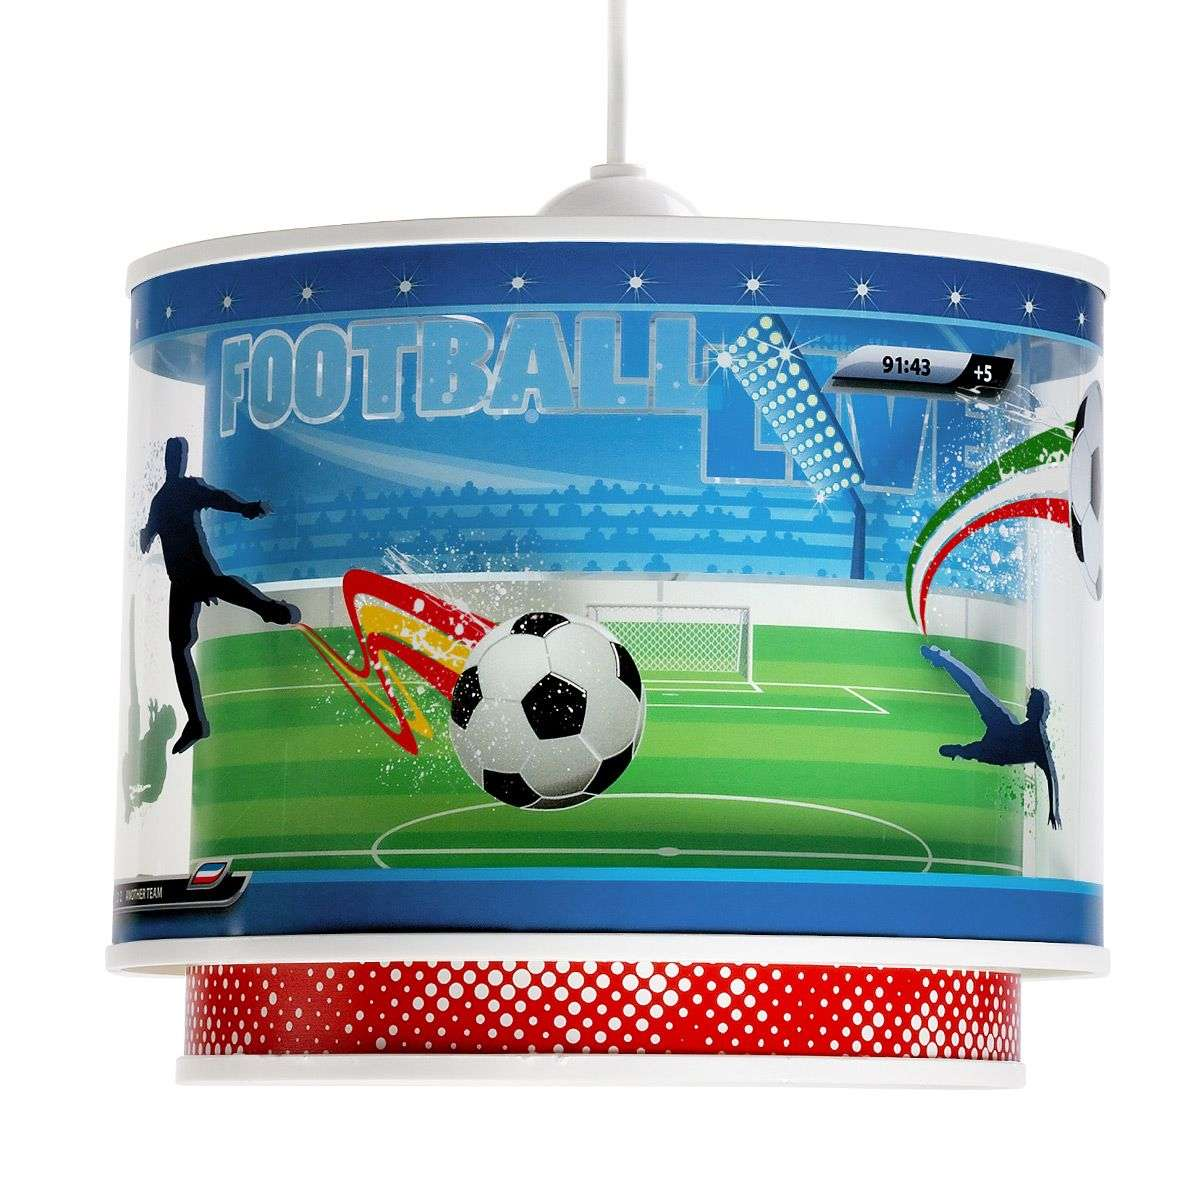 Football pendant light for sports lovers-2507272-31